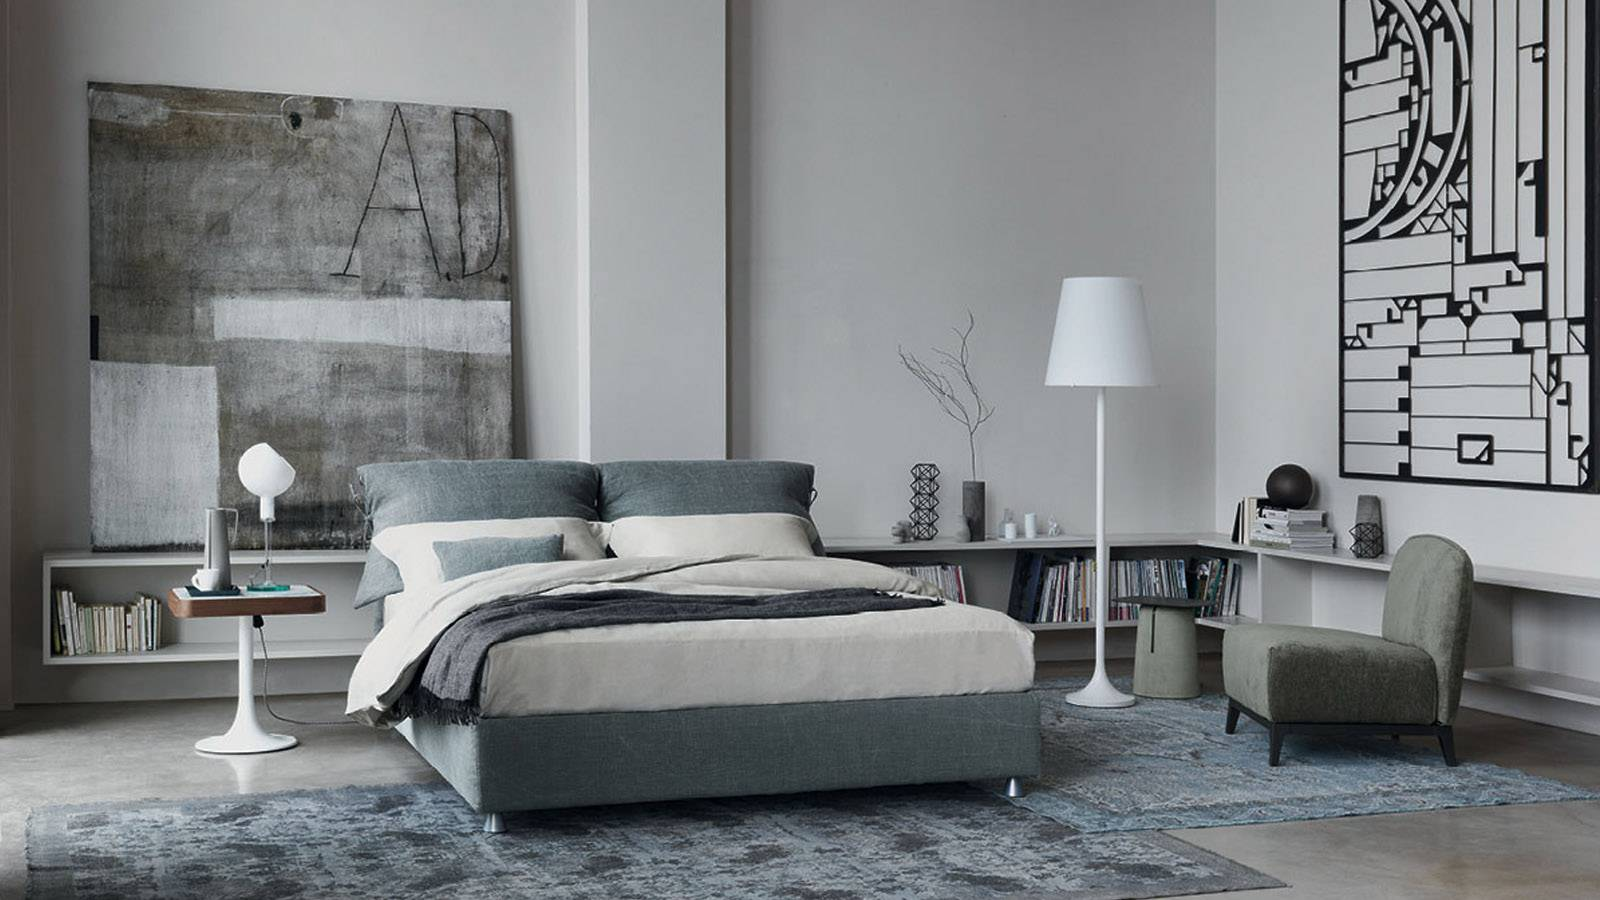 Flou beds modern style bedroom